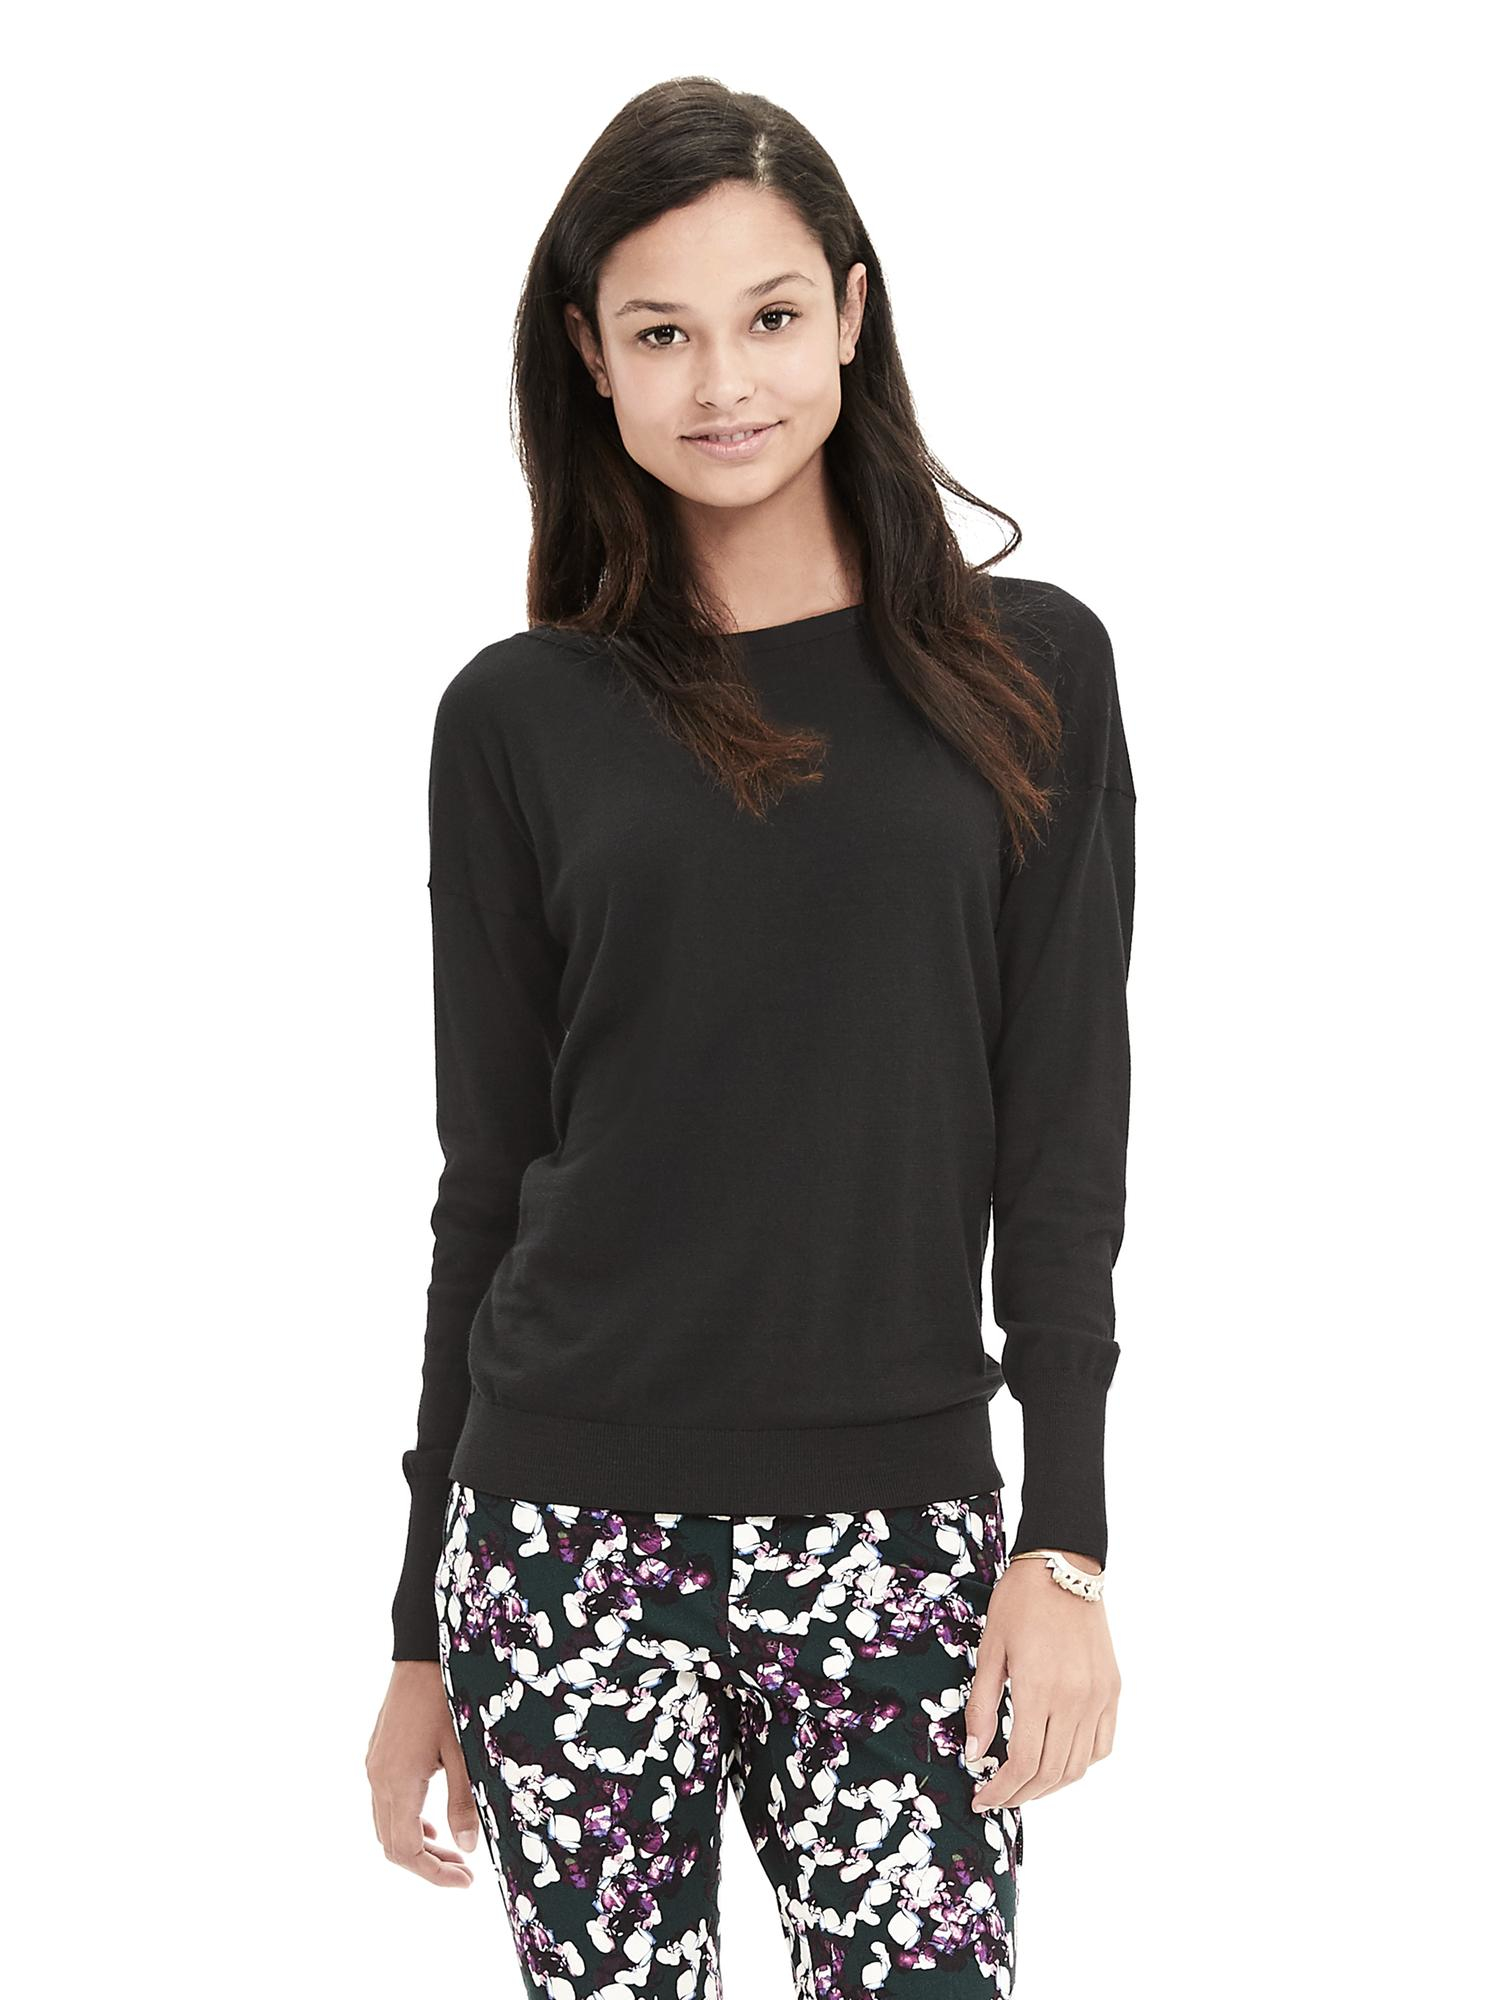 Free shipping and guaranteed authenticity on Republic Clothing Black Sweater.